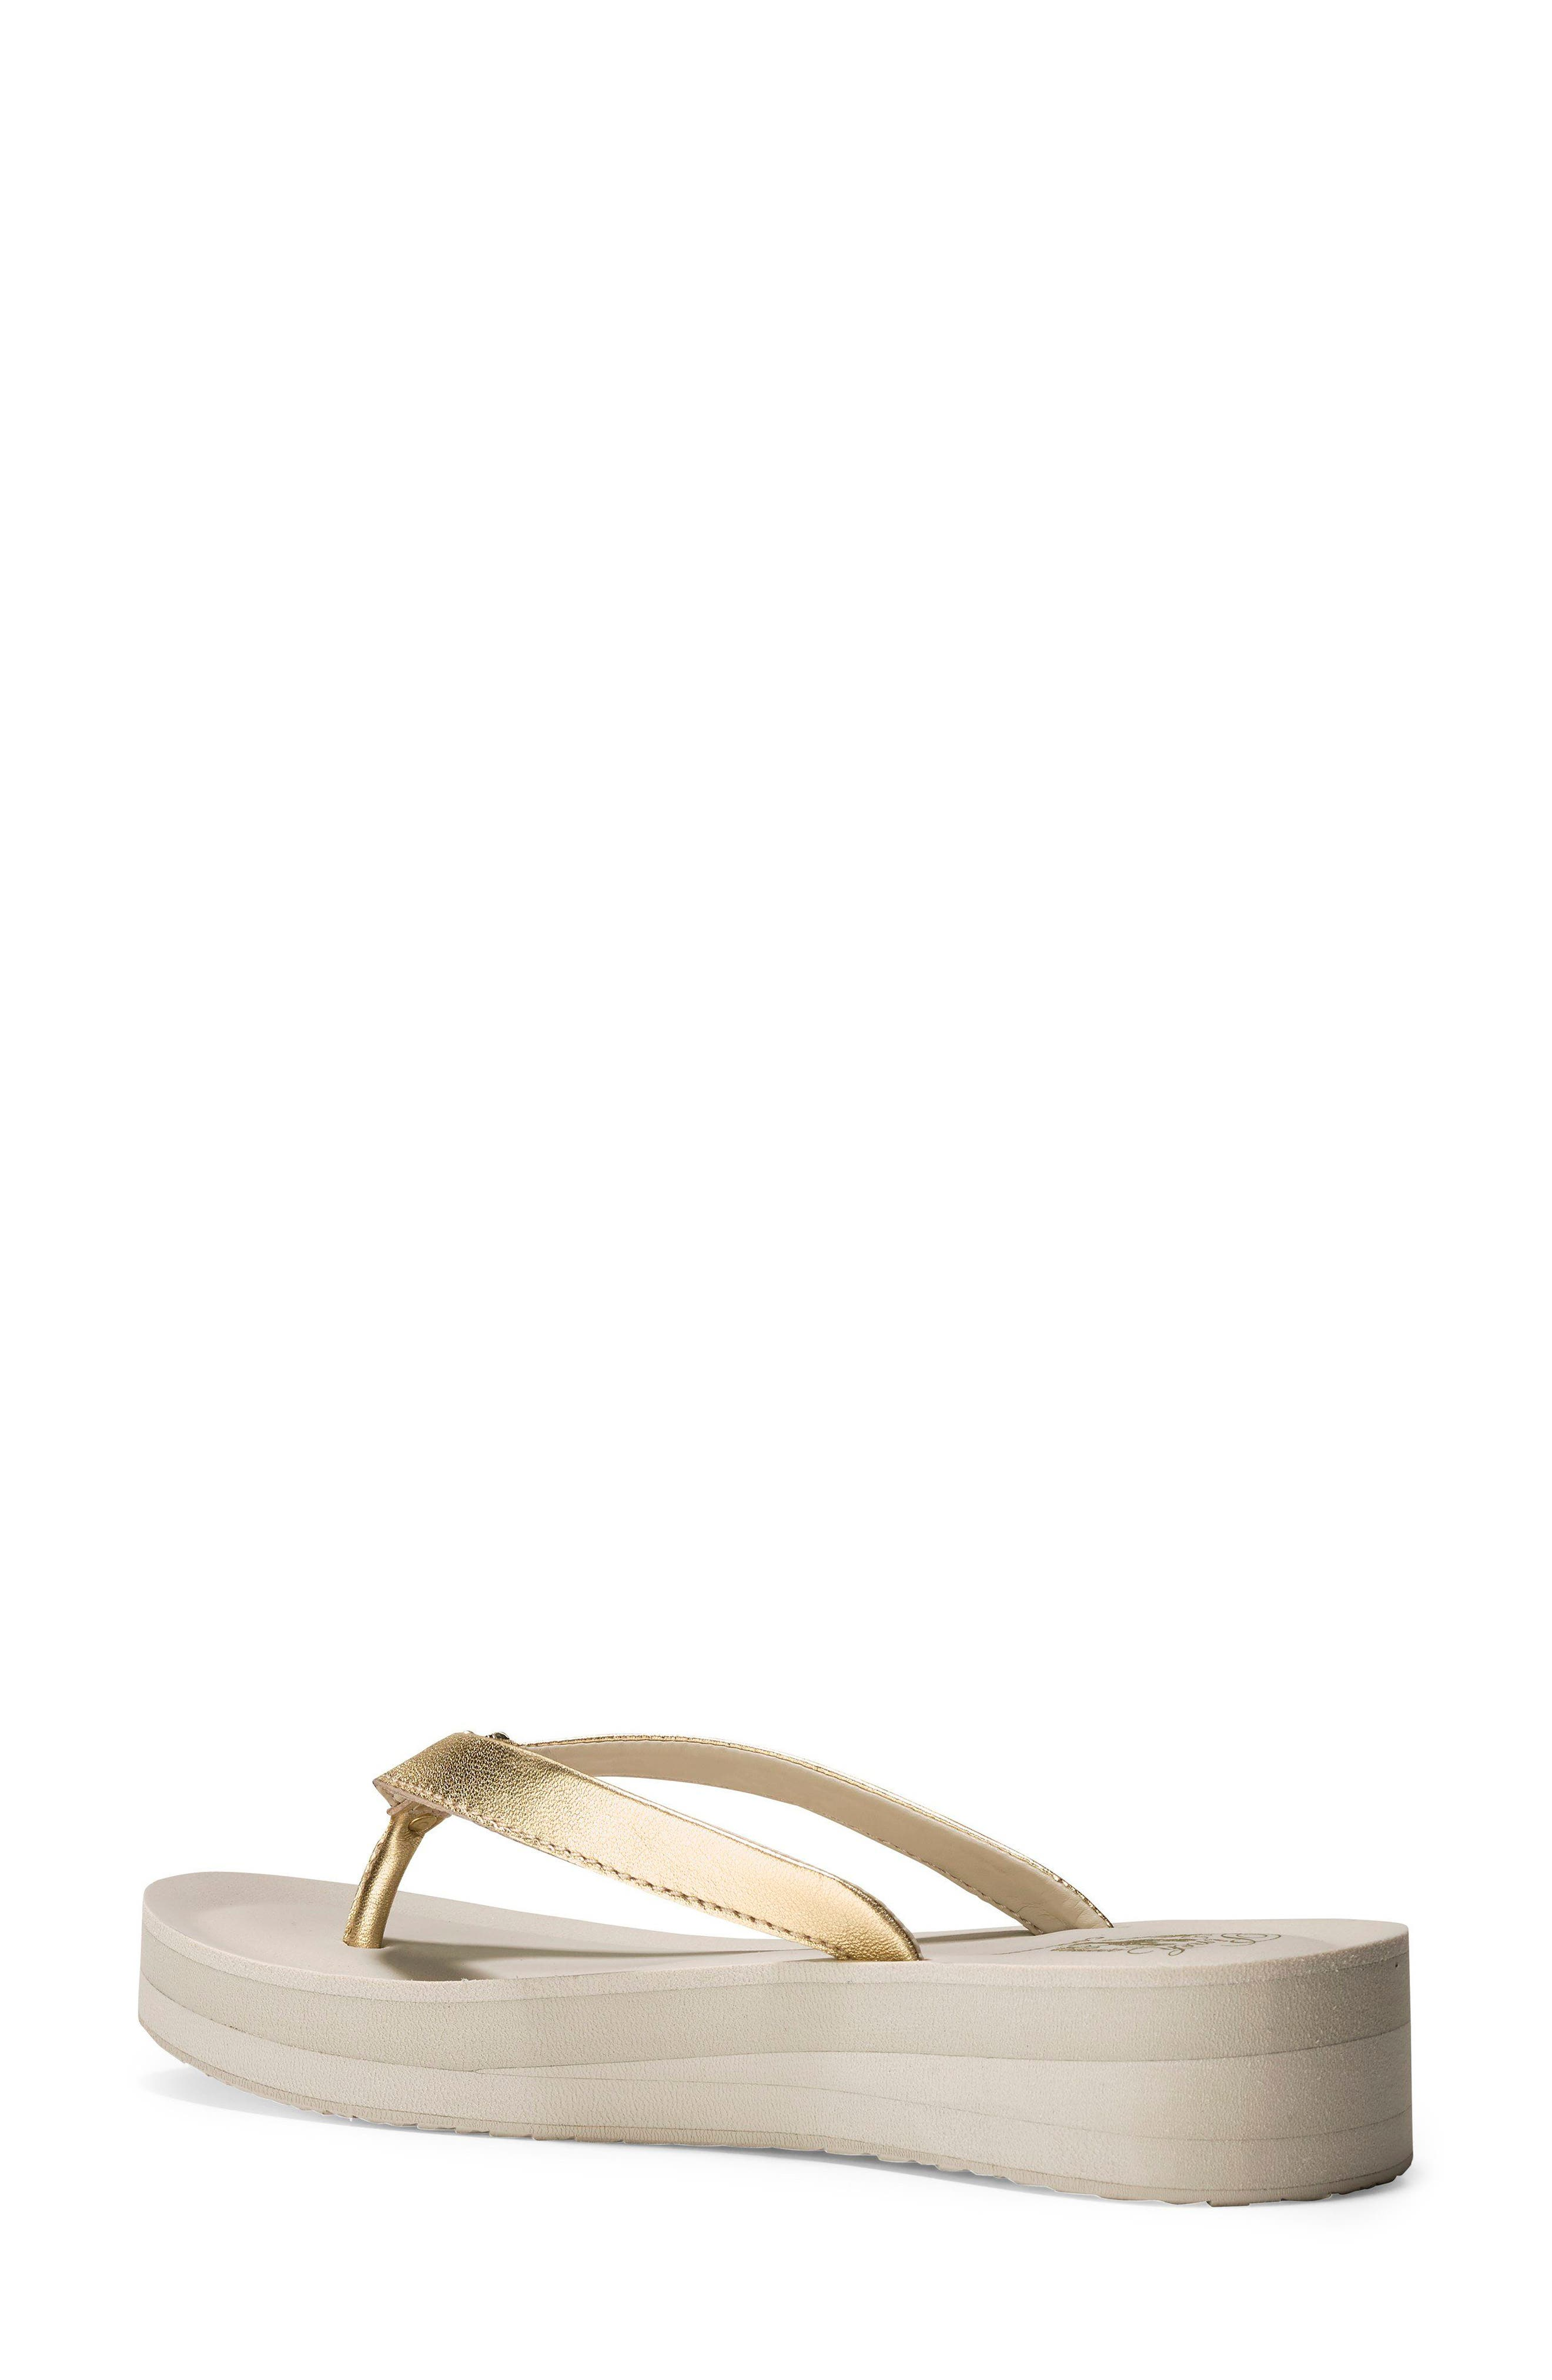 Lobster Wedge Flip Flop,                             Alternate thumbnail 2, color,                             Gold/ Pumice Stone Leather